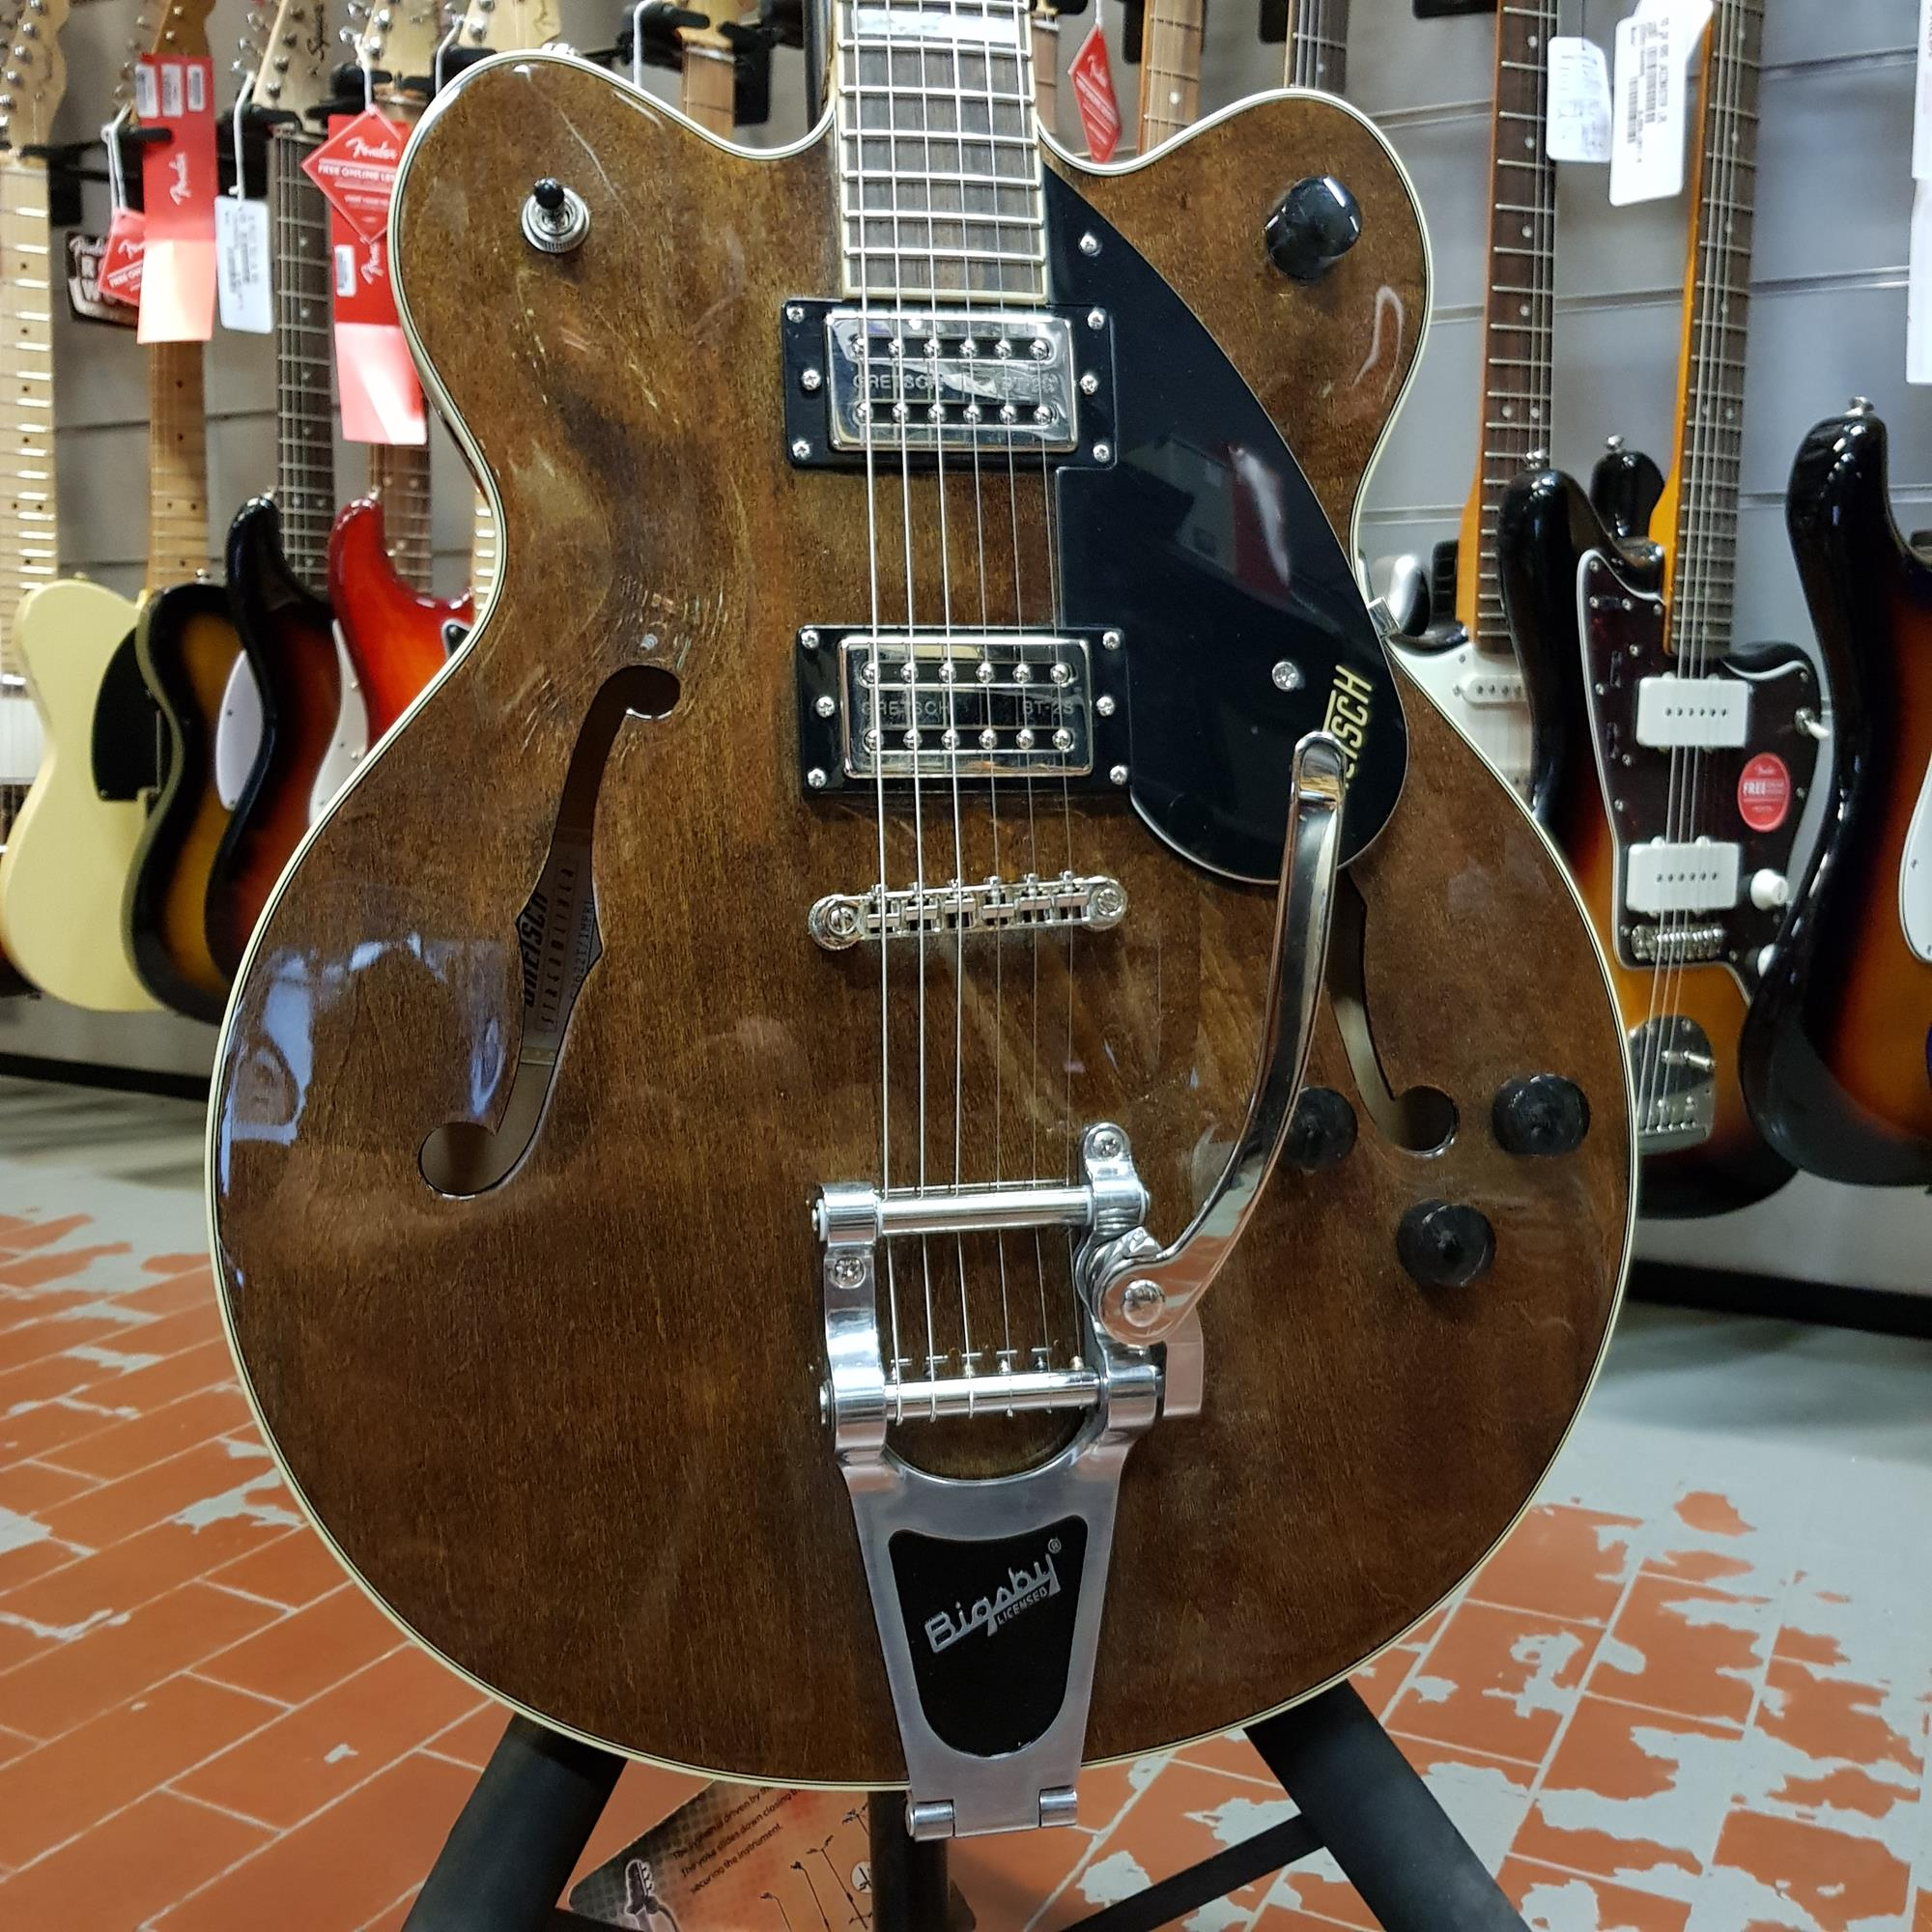 GRETSCH-STREAMLINER-G2622T-IMPERIAL-WITH-BIGSBY-sku-1627144864032